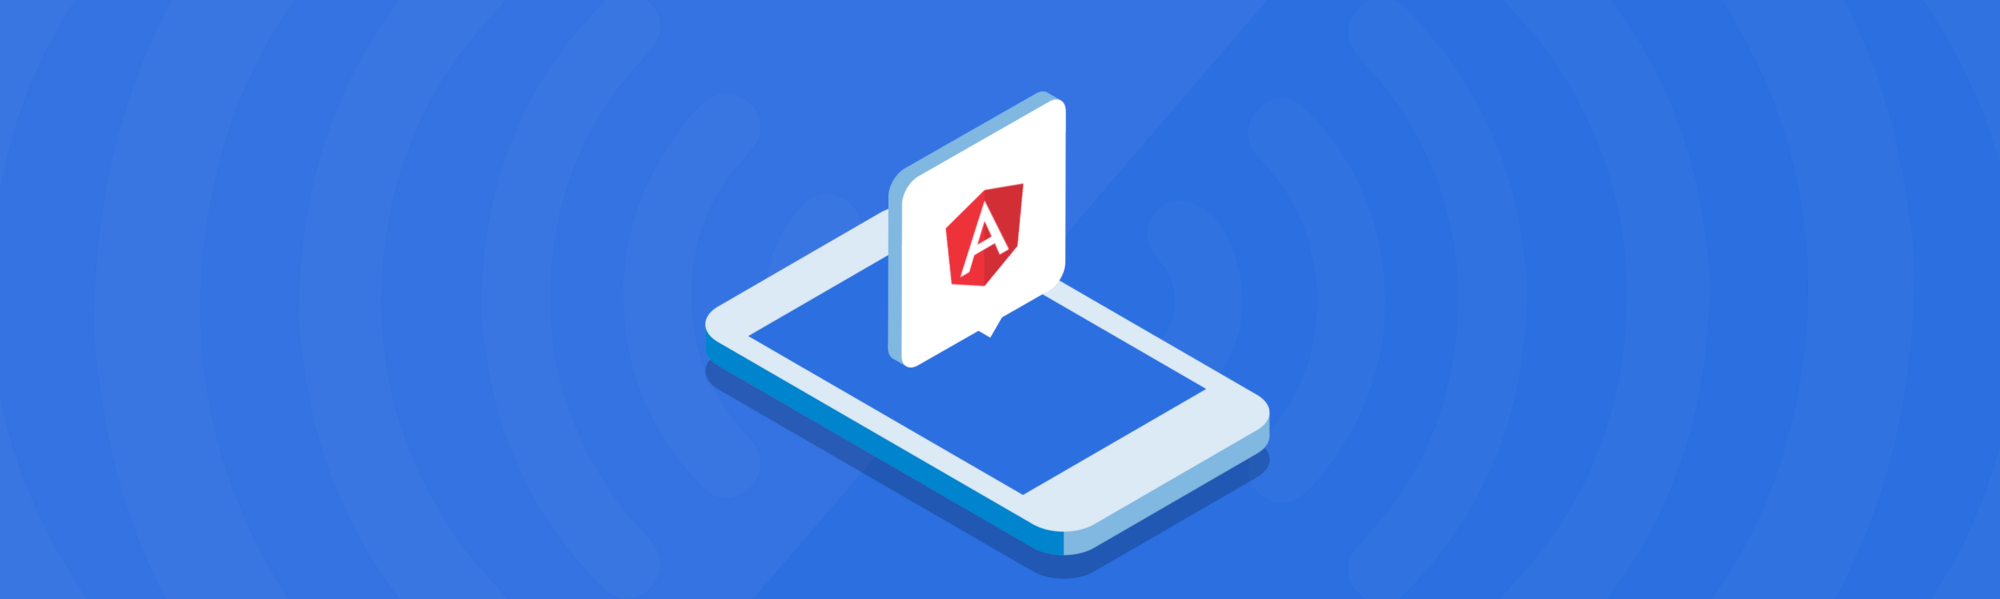 Turn your Angular App into a PWA in 4 Easy Steps